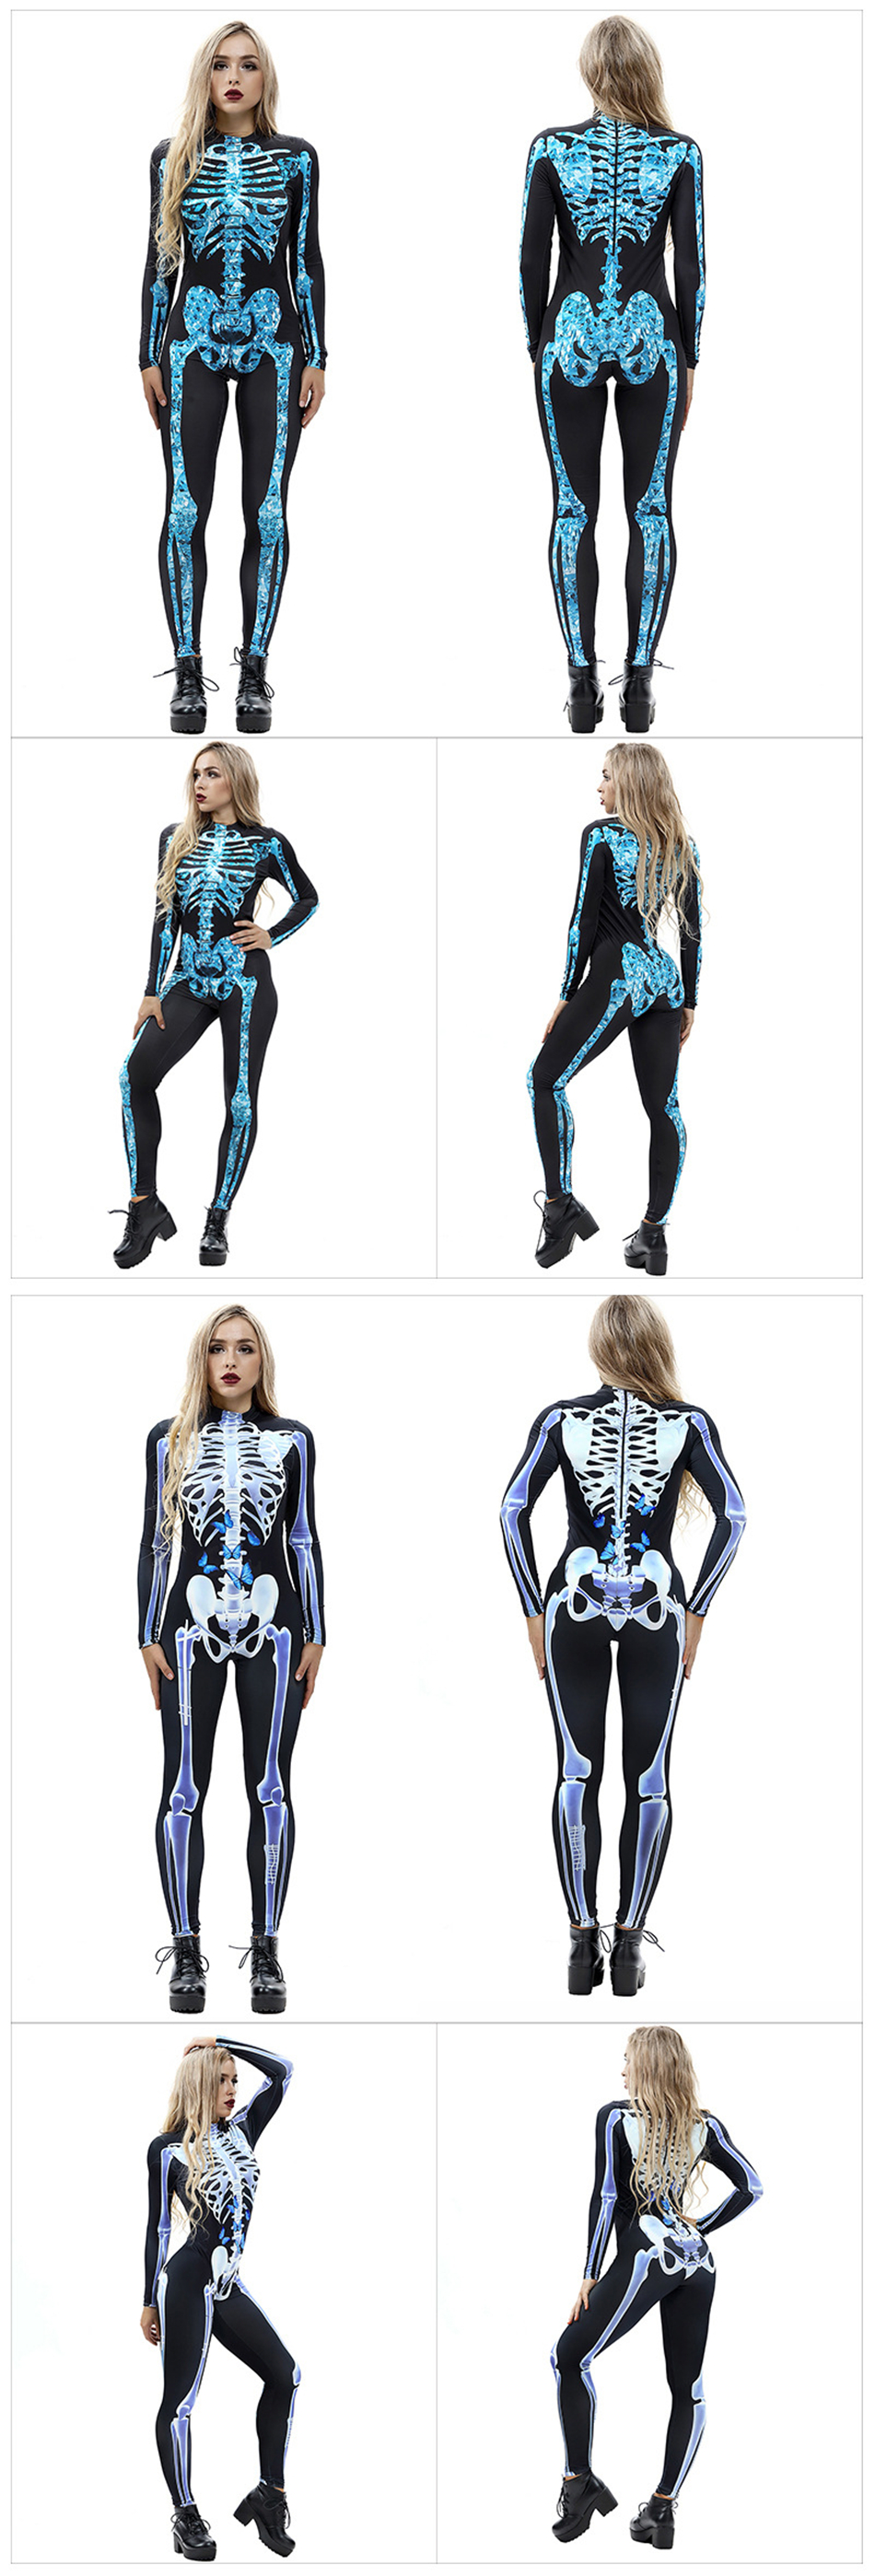 H3e211f1db2e64b85a283a7dc9b830b575 - 8Style Halloween Cosplay Costumes for Women Adult Scary Skeleton Bodysuit Print Long Sleeve Carnival Party Ghost Skull Dress